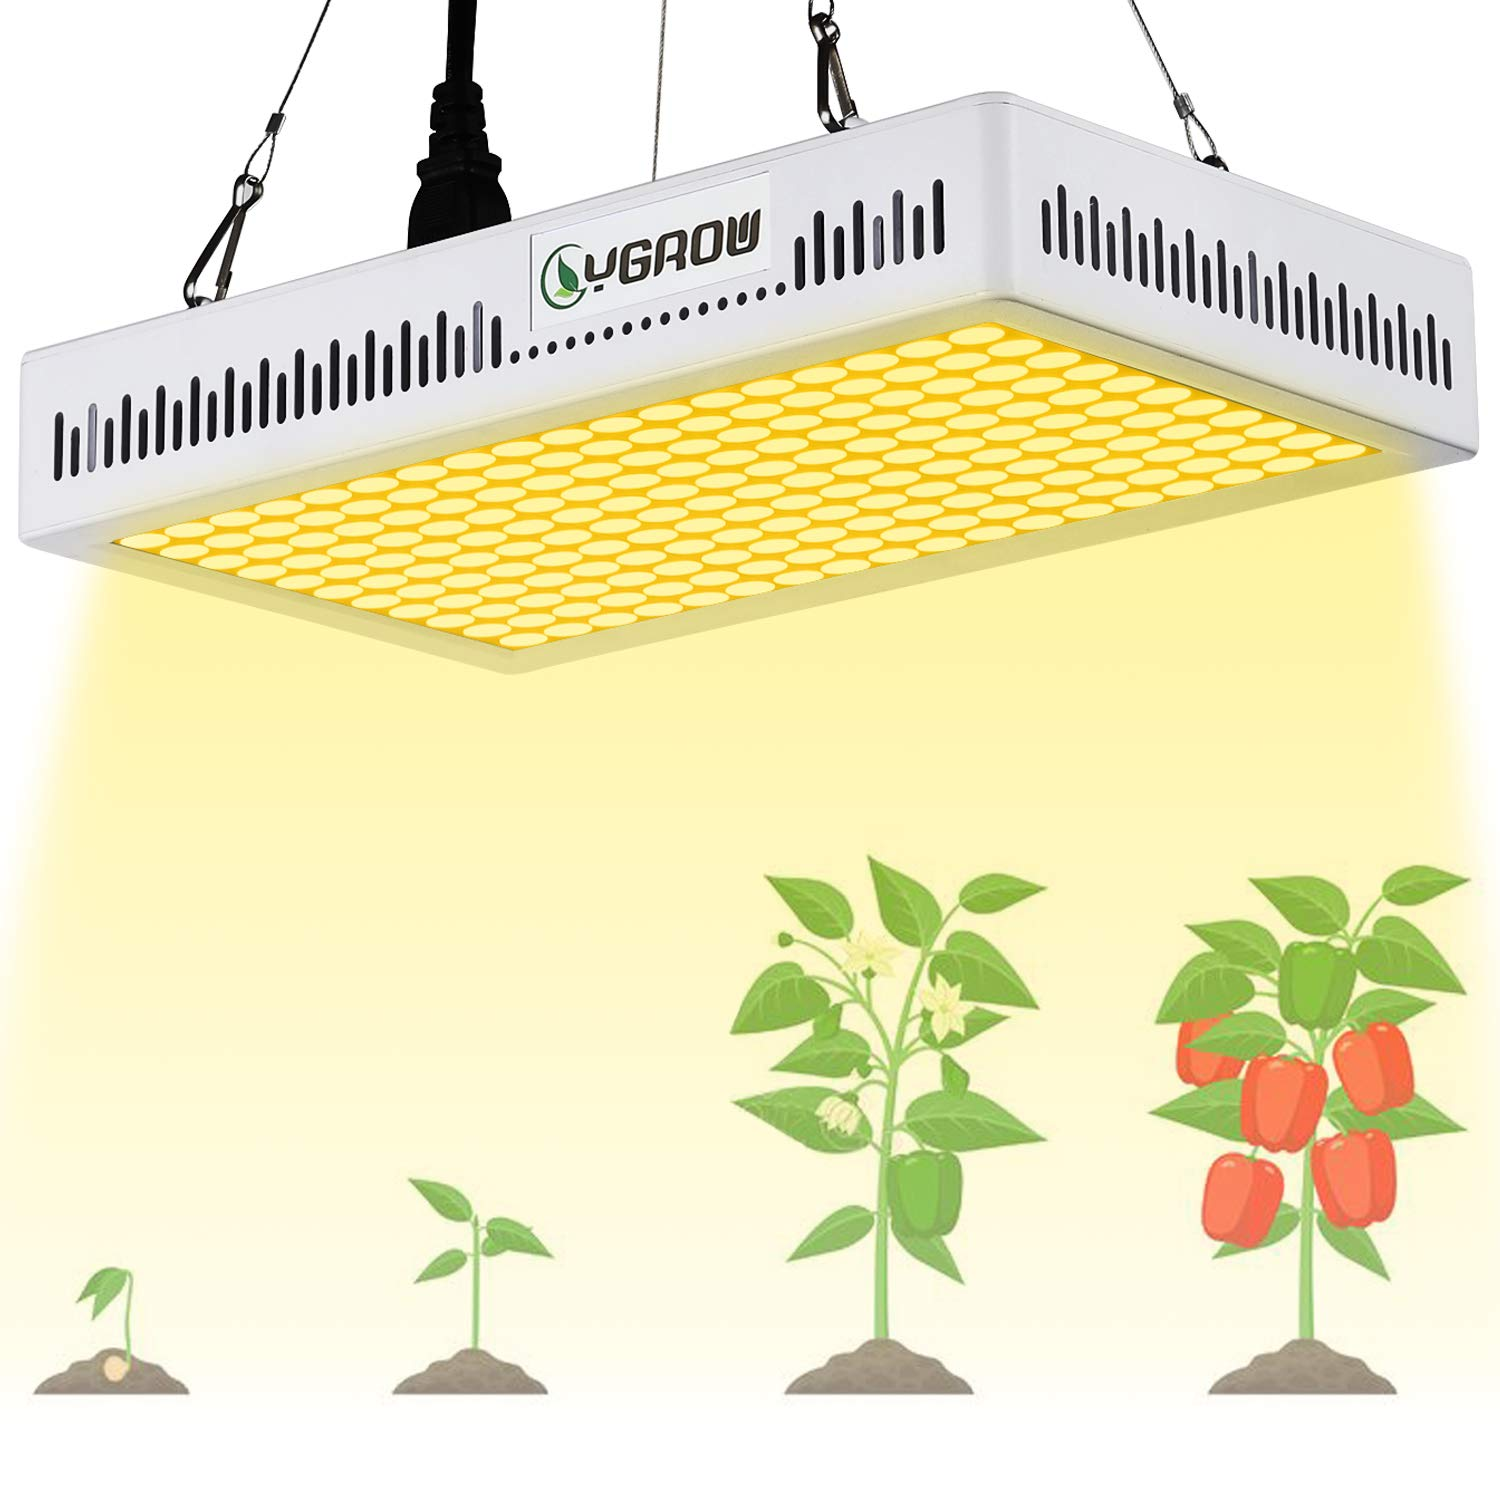 YGROW LED Grow Light Full Spectrum 600W,Reflector-Series Plant Grow Lights for Indoor Plants Veg and Flower with Heatproof Casing 3500K